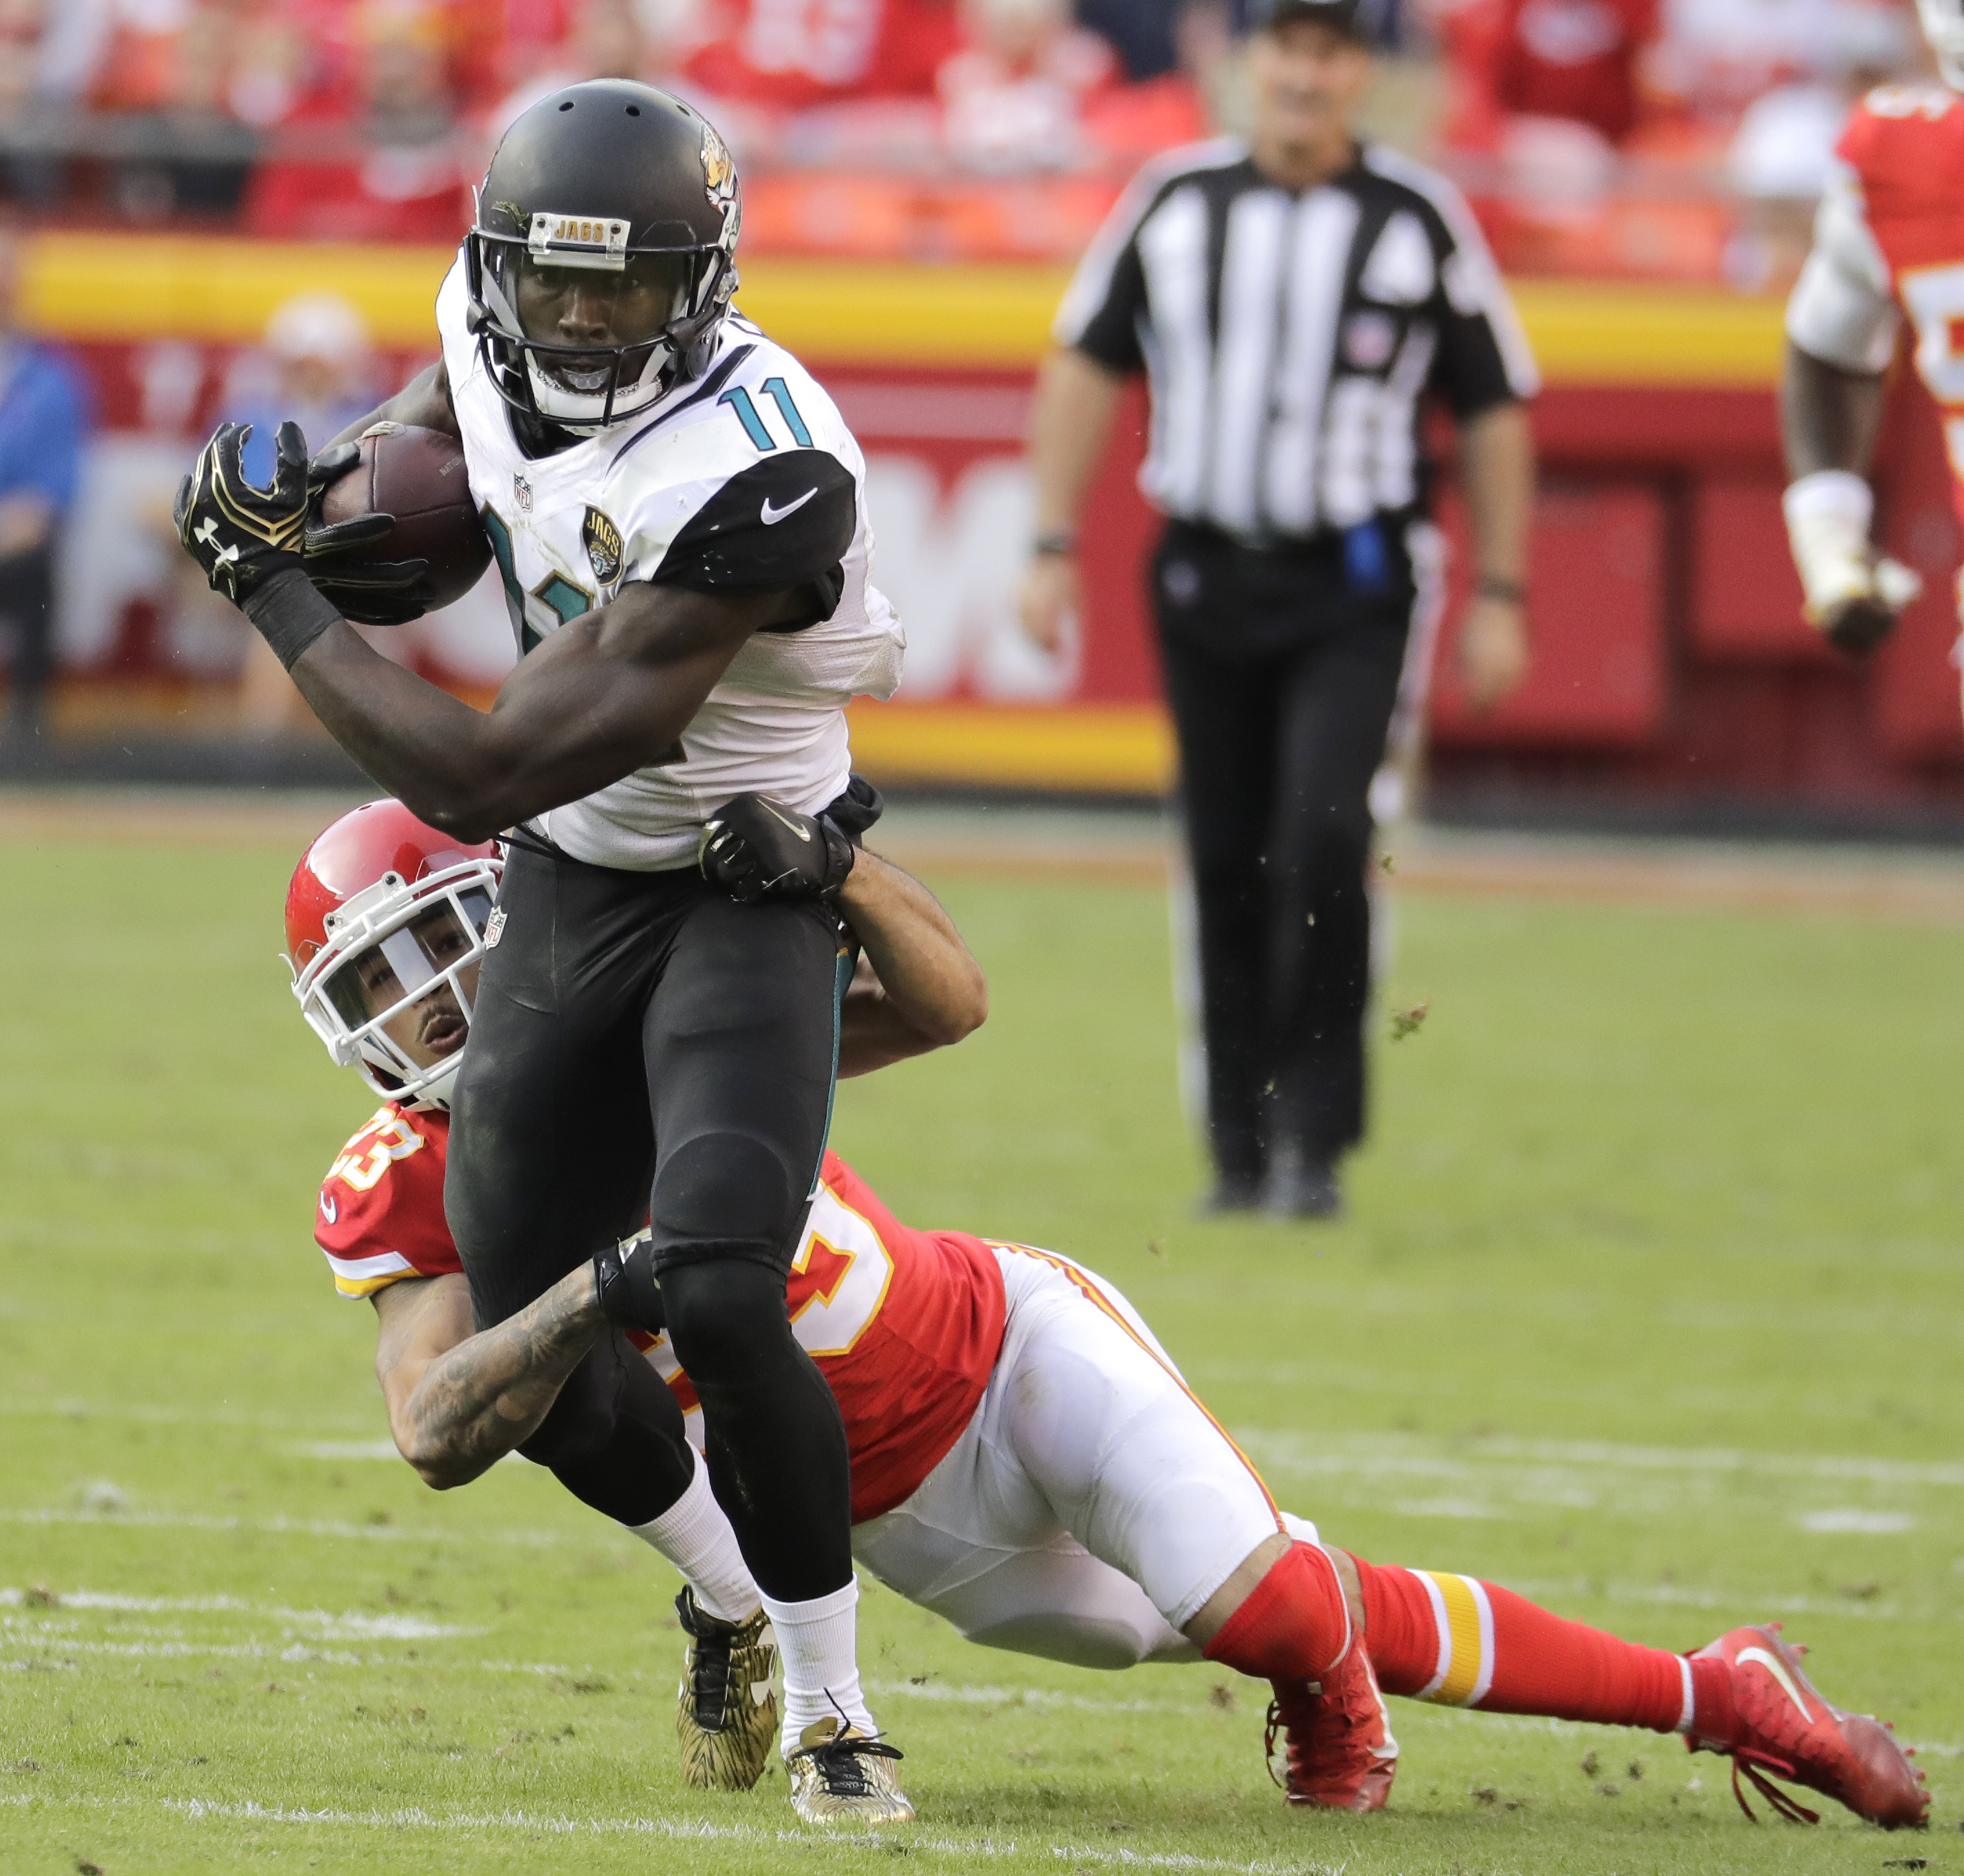 Jacksonville Jaguars wide receiver Marqise Lee (11) is tackled by Kansas City Chiefs defensive back Eric Berry (29) during the second half of an NFL football game in Kansas City, Mo., Sunday, Nov. 6, 2016. (AP Photo/Charlie Riedel)